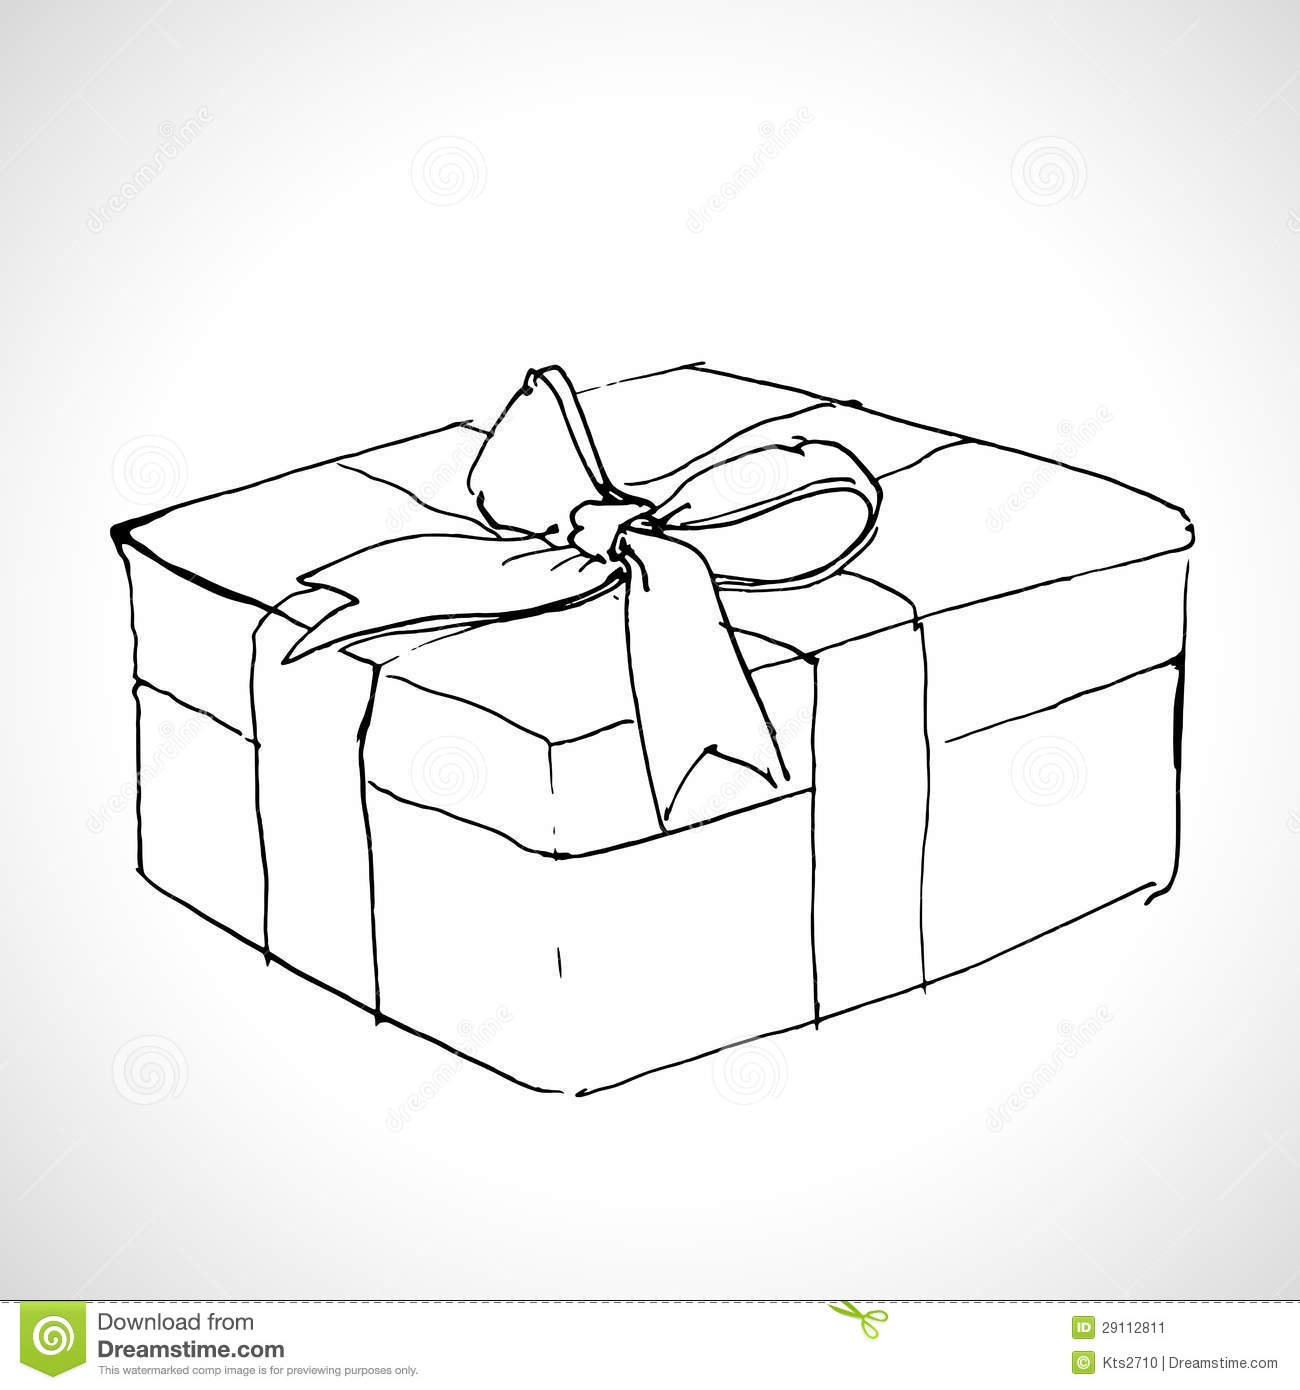 Stock Image Sketch Gift Box Image29112811 together with Simple  pass together with Post scroll Border Template 556782 also World Map Outline Clipart additionally Royalty Free Stock Photo Vector Broken Glass Background High Quality Trace Image36500855. on simple us map vector